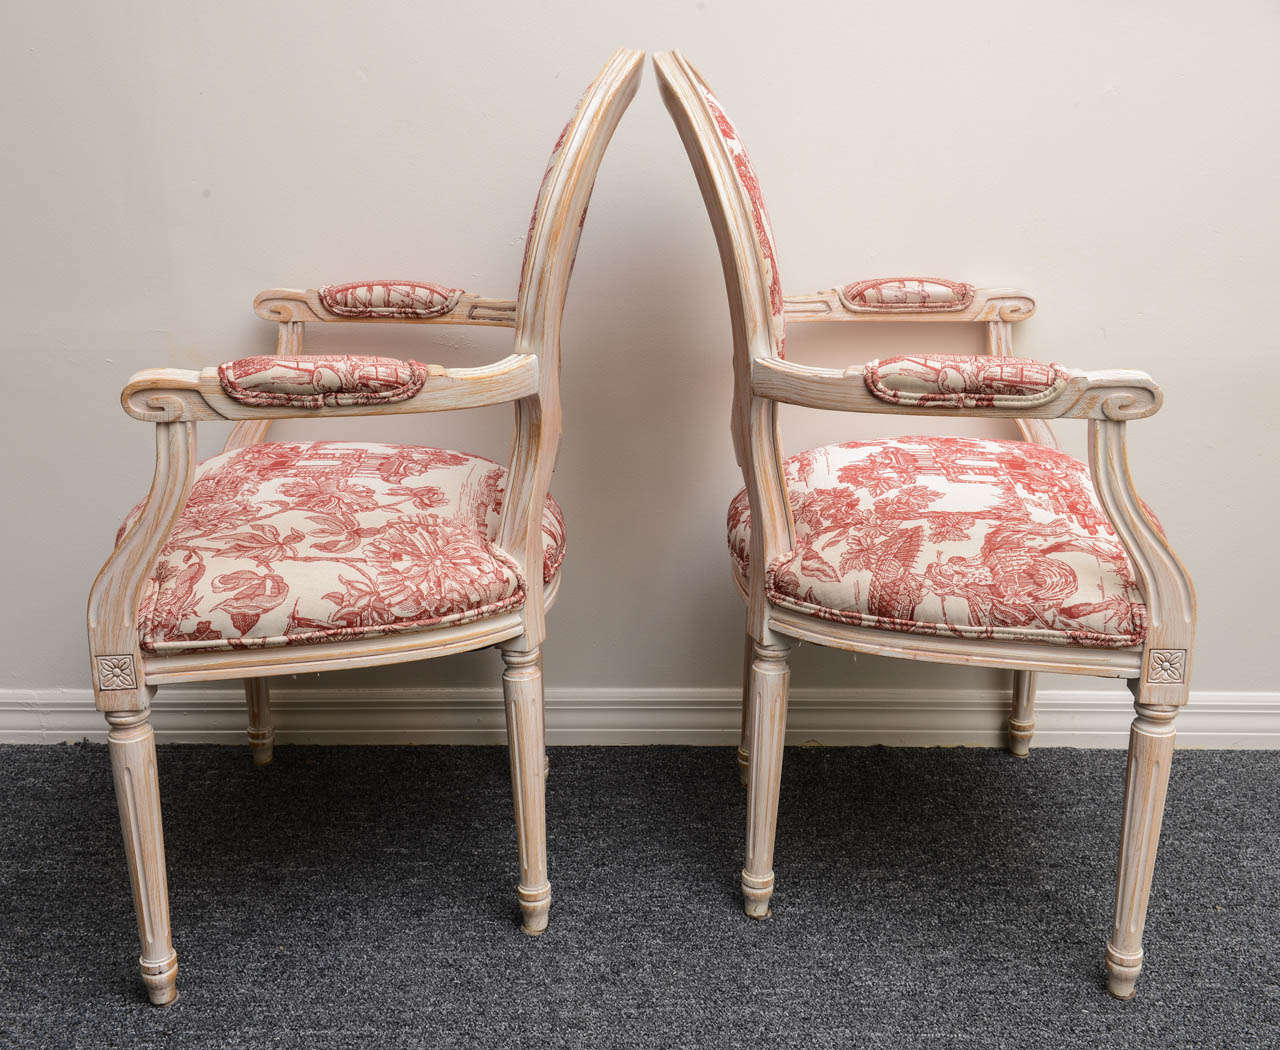 Pair French Louis XVI Style Armchairs Upholstered in a Red Chinoiserie Fabric 5